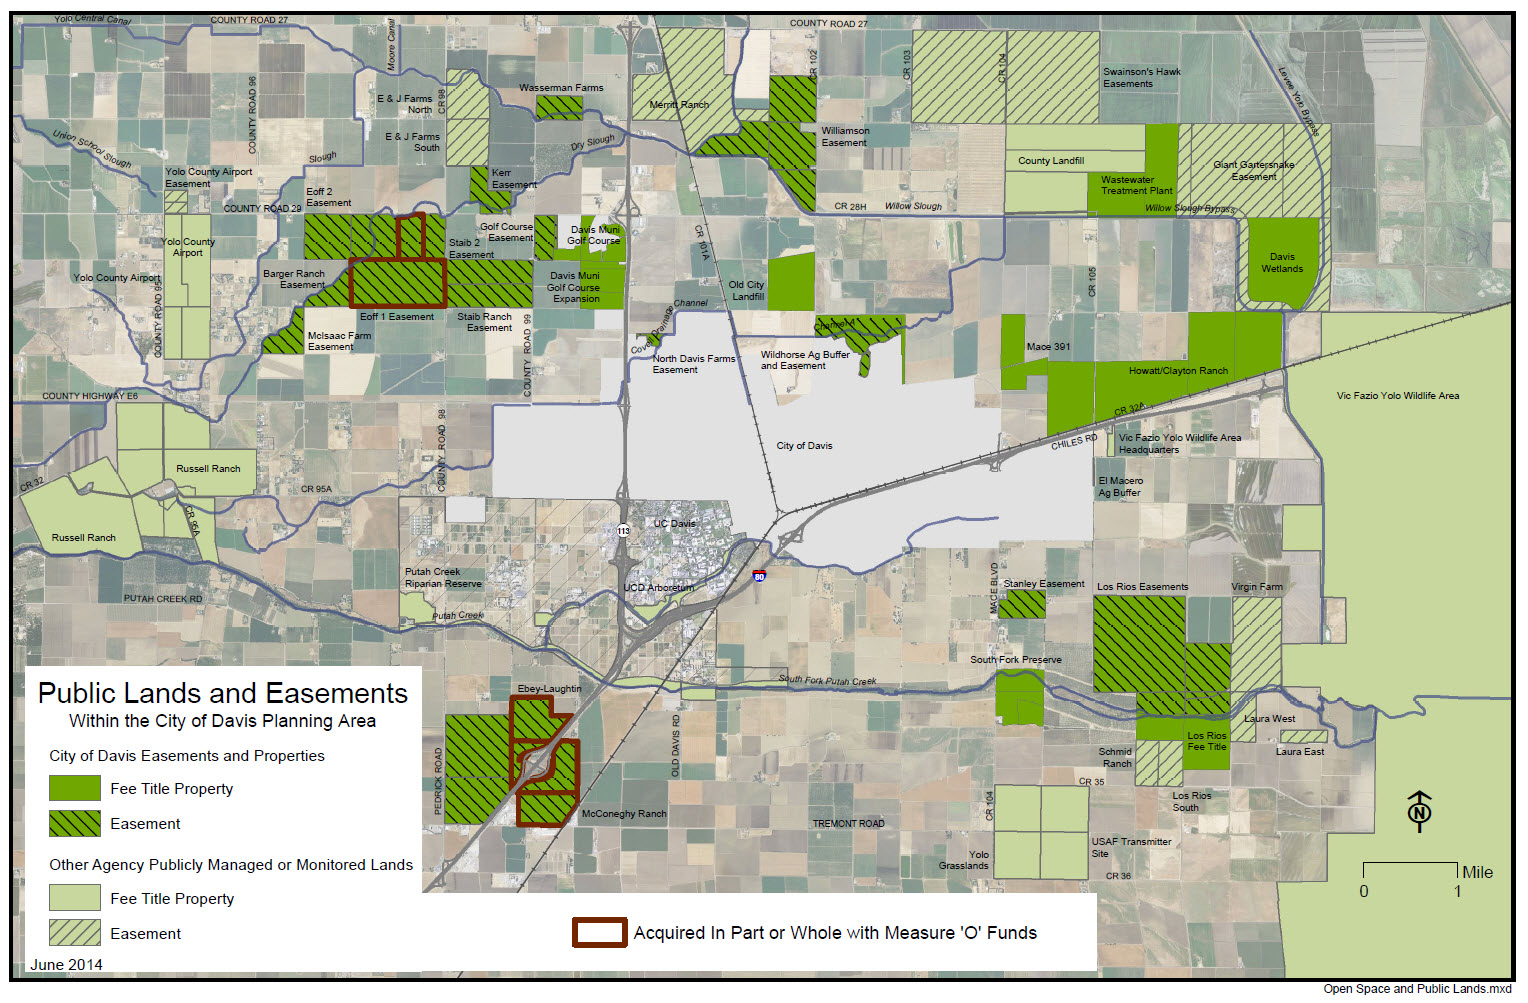 The open space map shows the mitigation lands that are scattered far from the Davis boundary